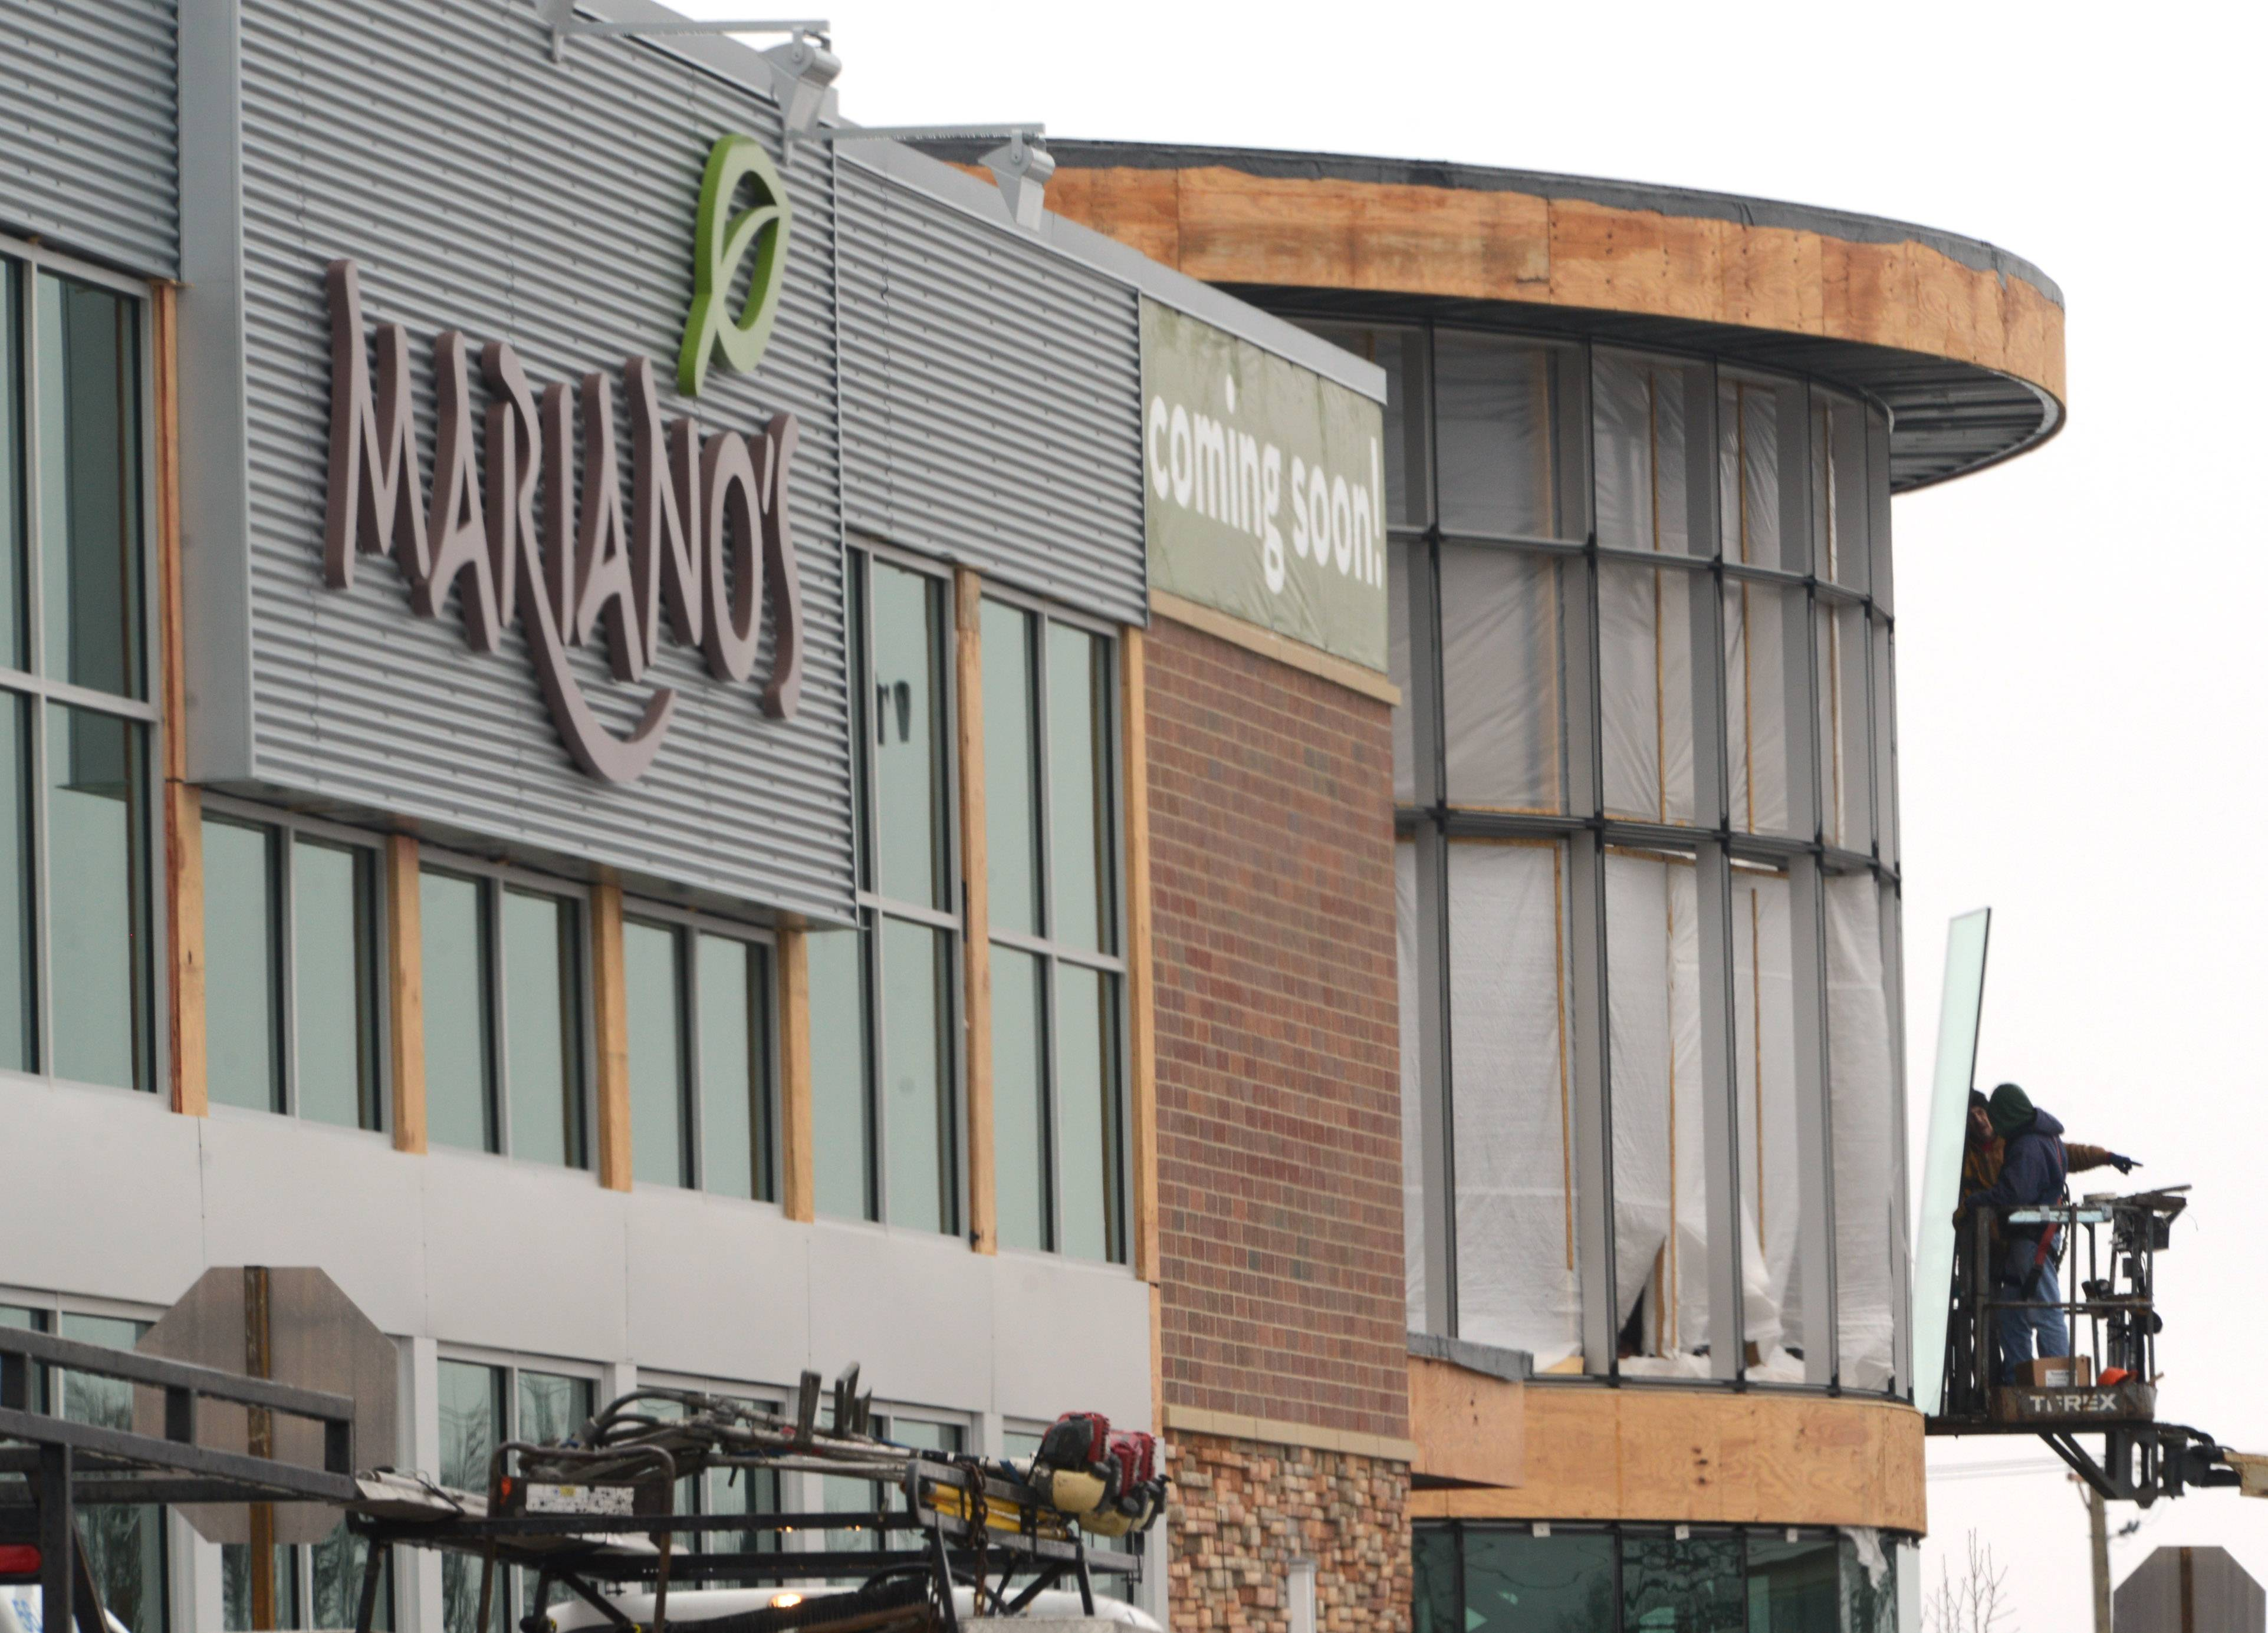 Des Plaines officials confirmed Thursday that Mariano's is looking to open a new location on the northeast corner of Golf and Mount Prospect roads.